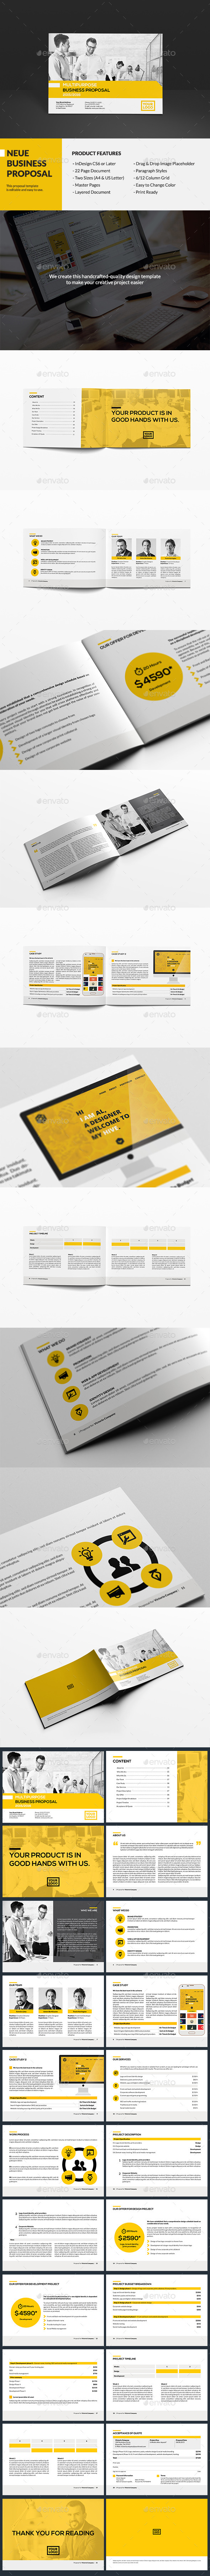 Neue - Business Proposal - Proposals & Invoices Stationery